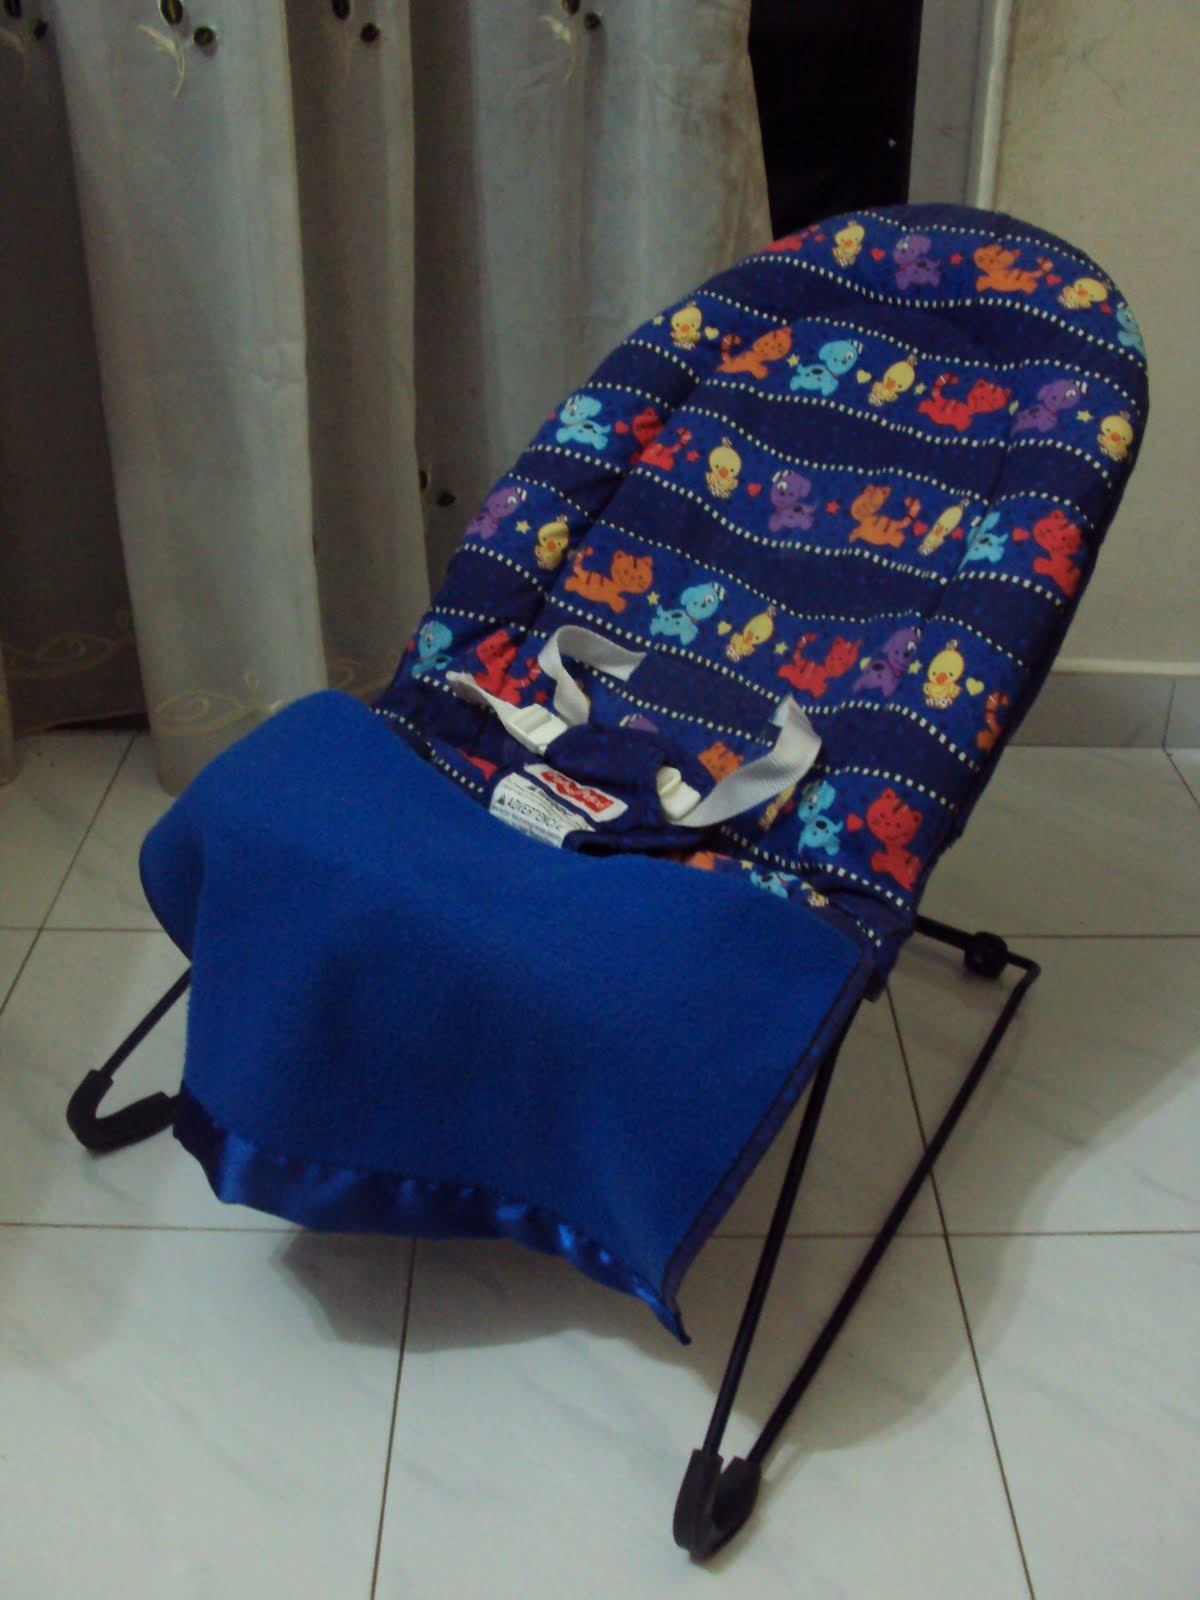 calming vibrations baby chair cream upholstered dining chairs uk toys4toddlers fisher price cover 39n play bouncer